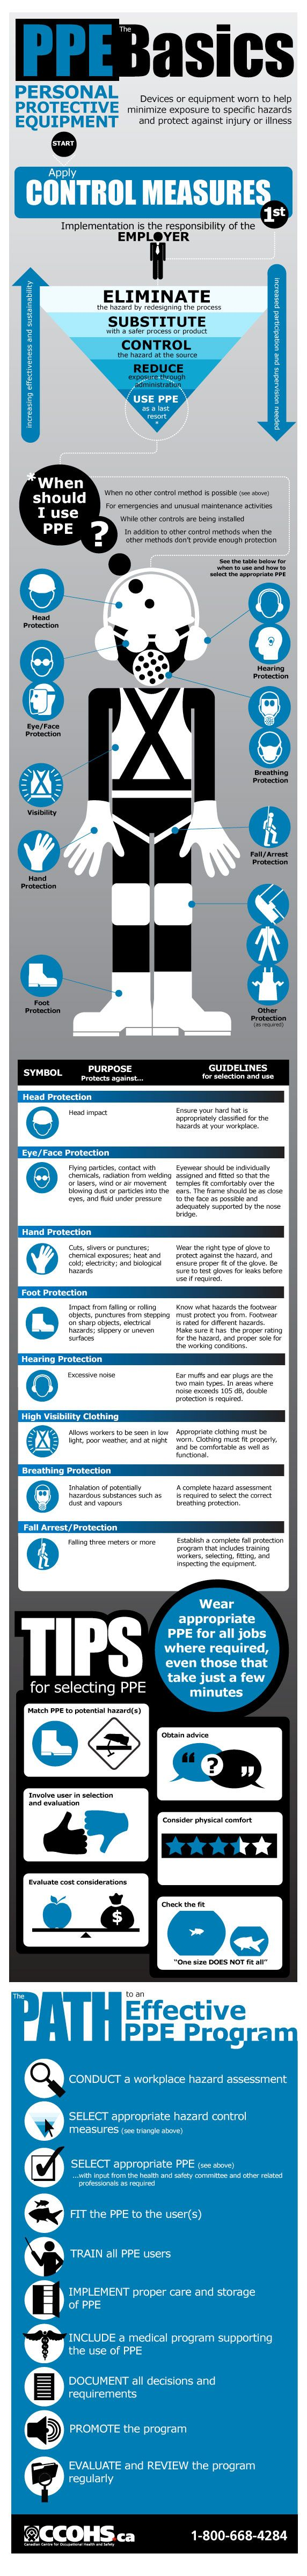 Learn more about the most common types of PPE, as well as designing an effective PPE program.  http://www.ccohs.ca/oshanswers/prevention/ppe/